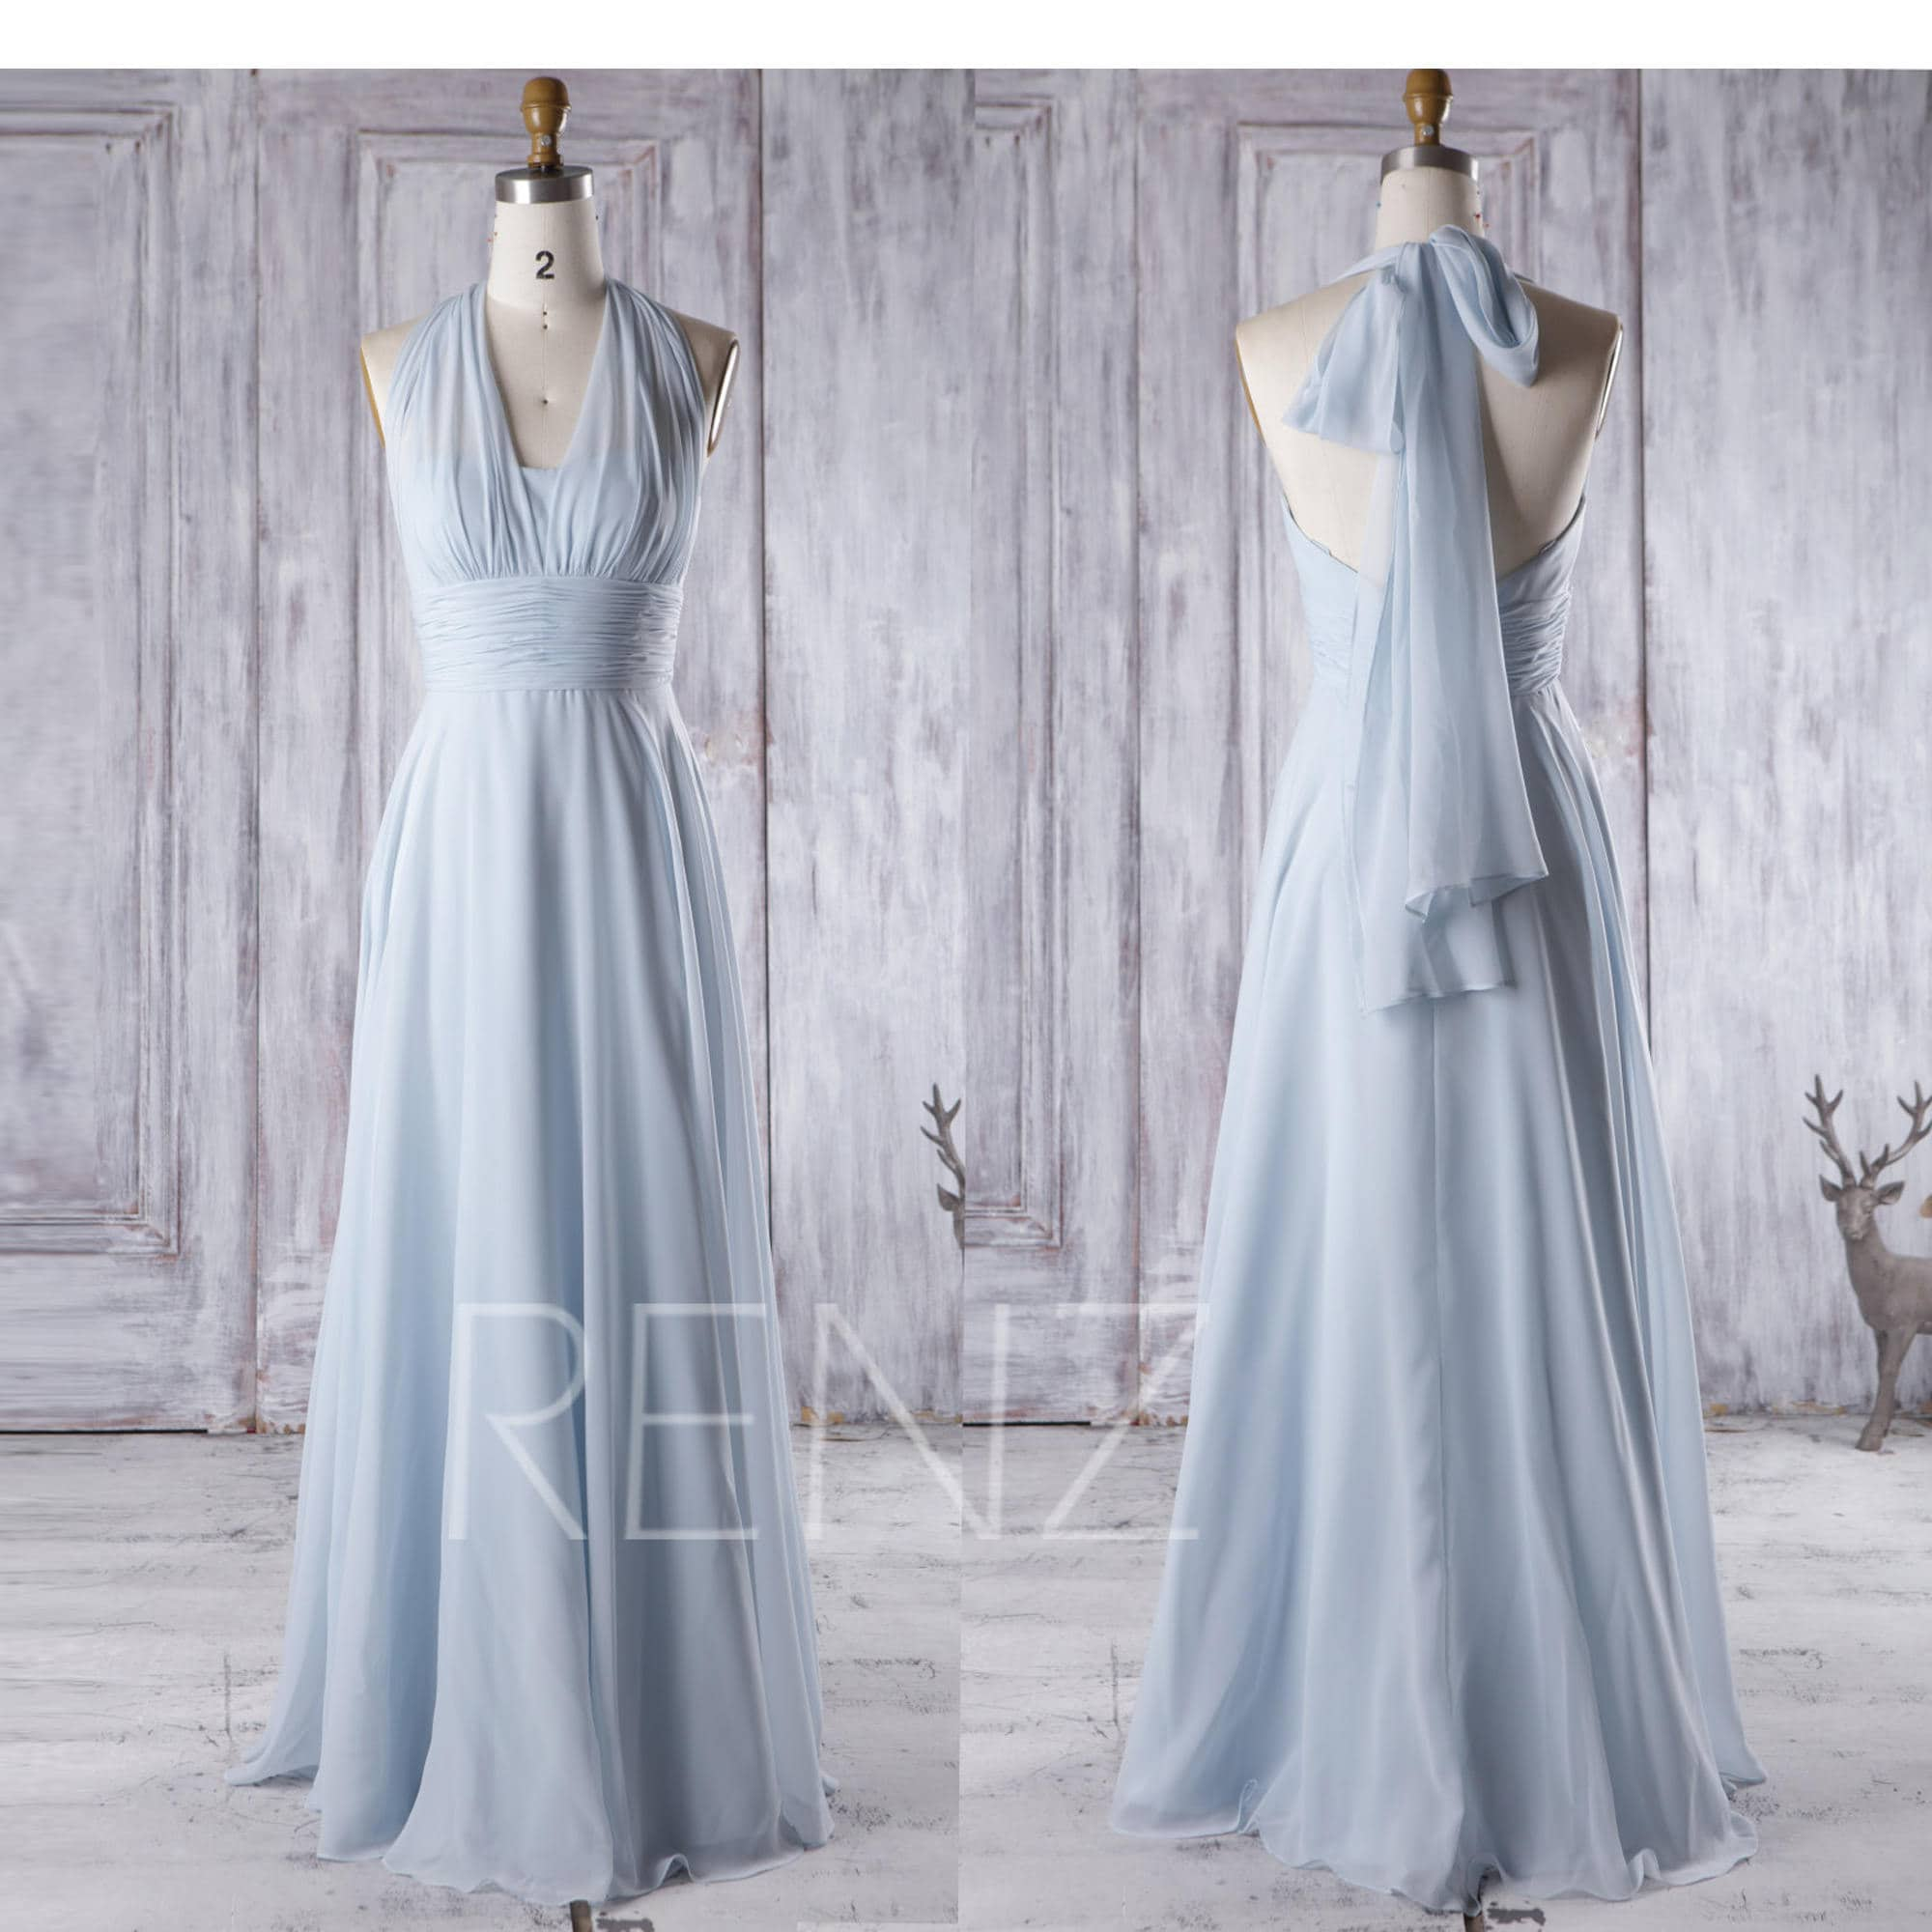 aa9293f77ca2 Light Blue Bridesmaid Dresses With Sleeves